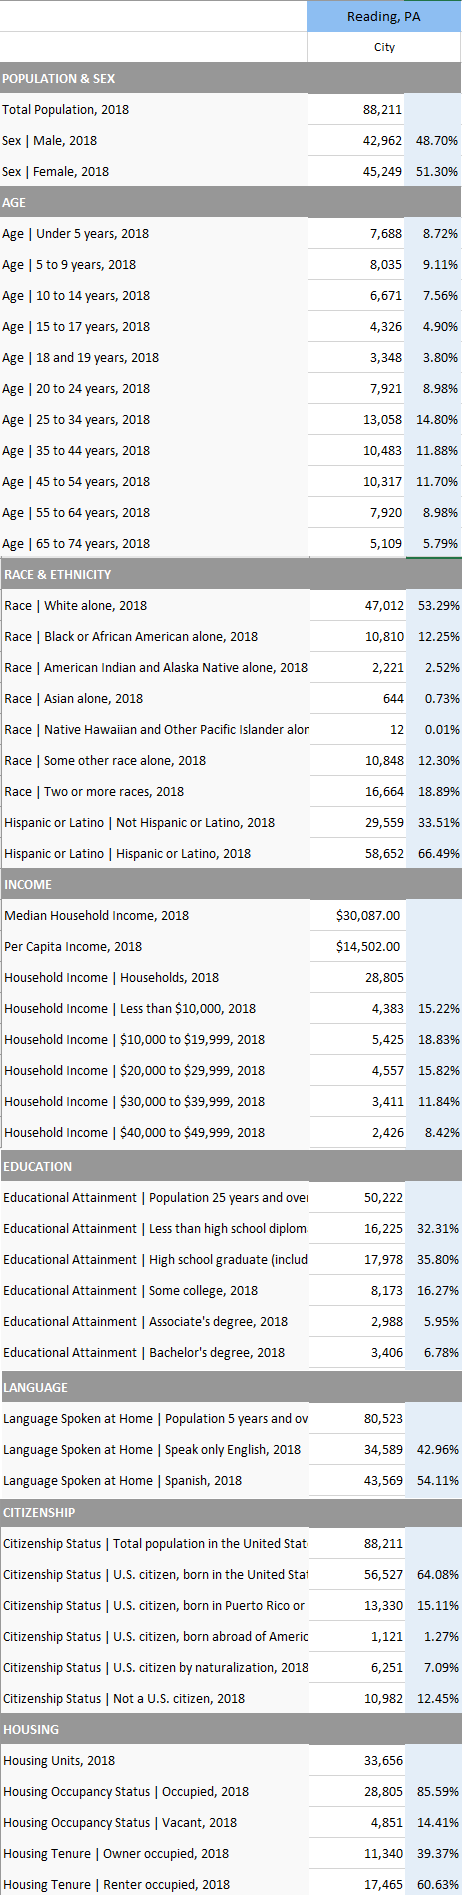 Quick report demographic overview of Reading, PA from SimplyAnalytics.